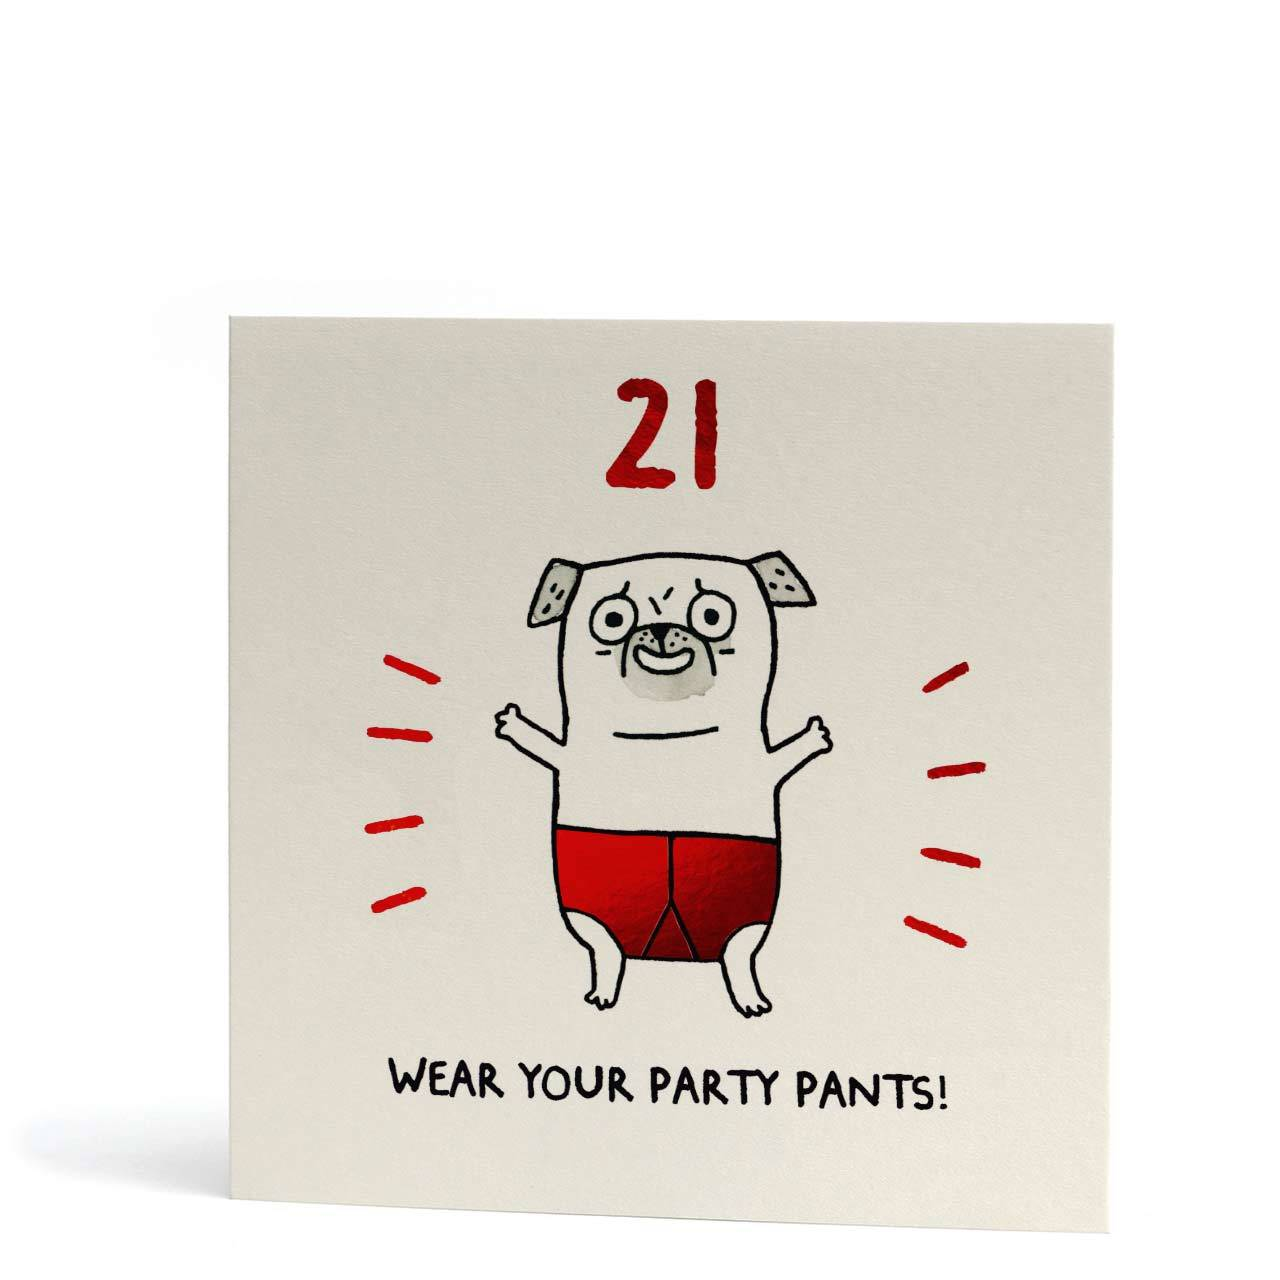 Wear Your Party Pants 21st Birthday Red Foil Greeting Card